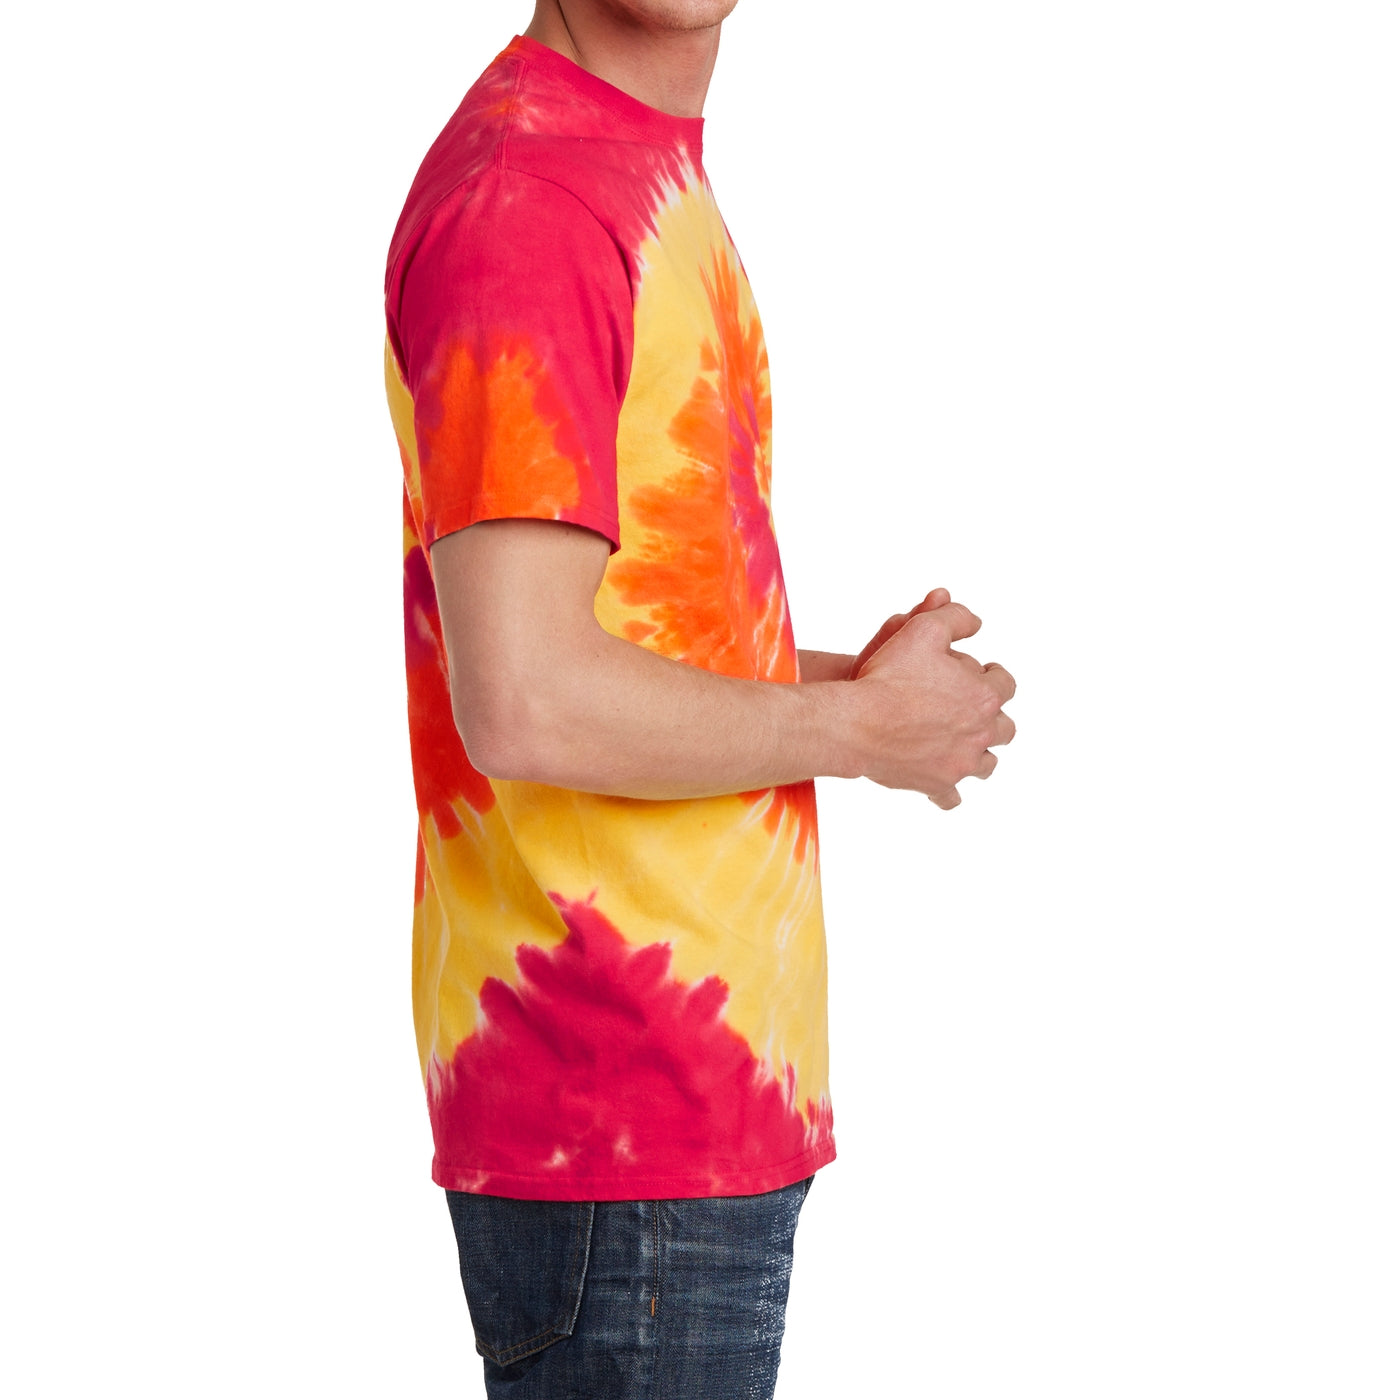 Men's Tie-Dye Tee - Blaze Rainbow - Side